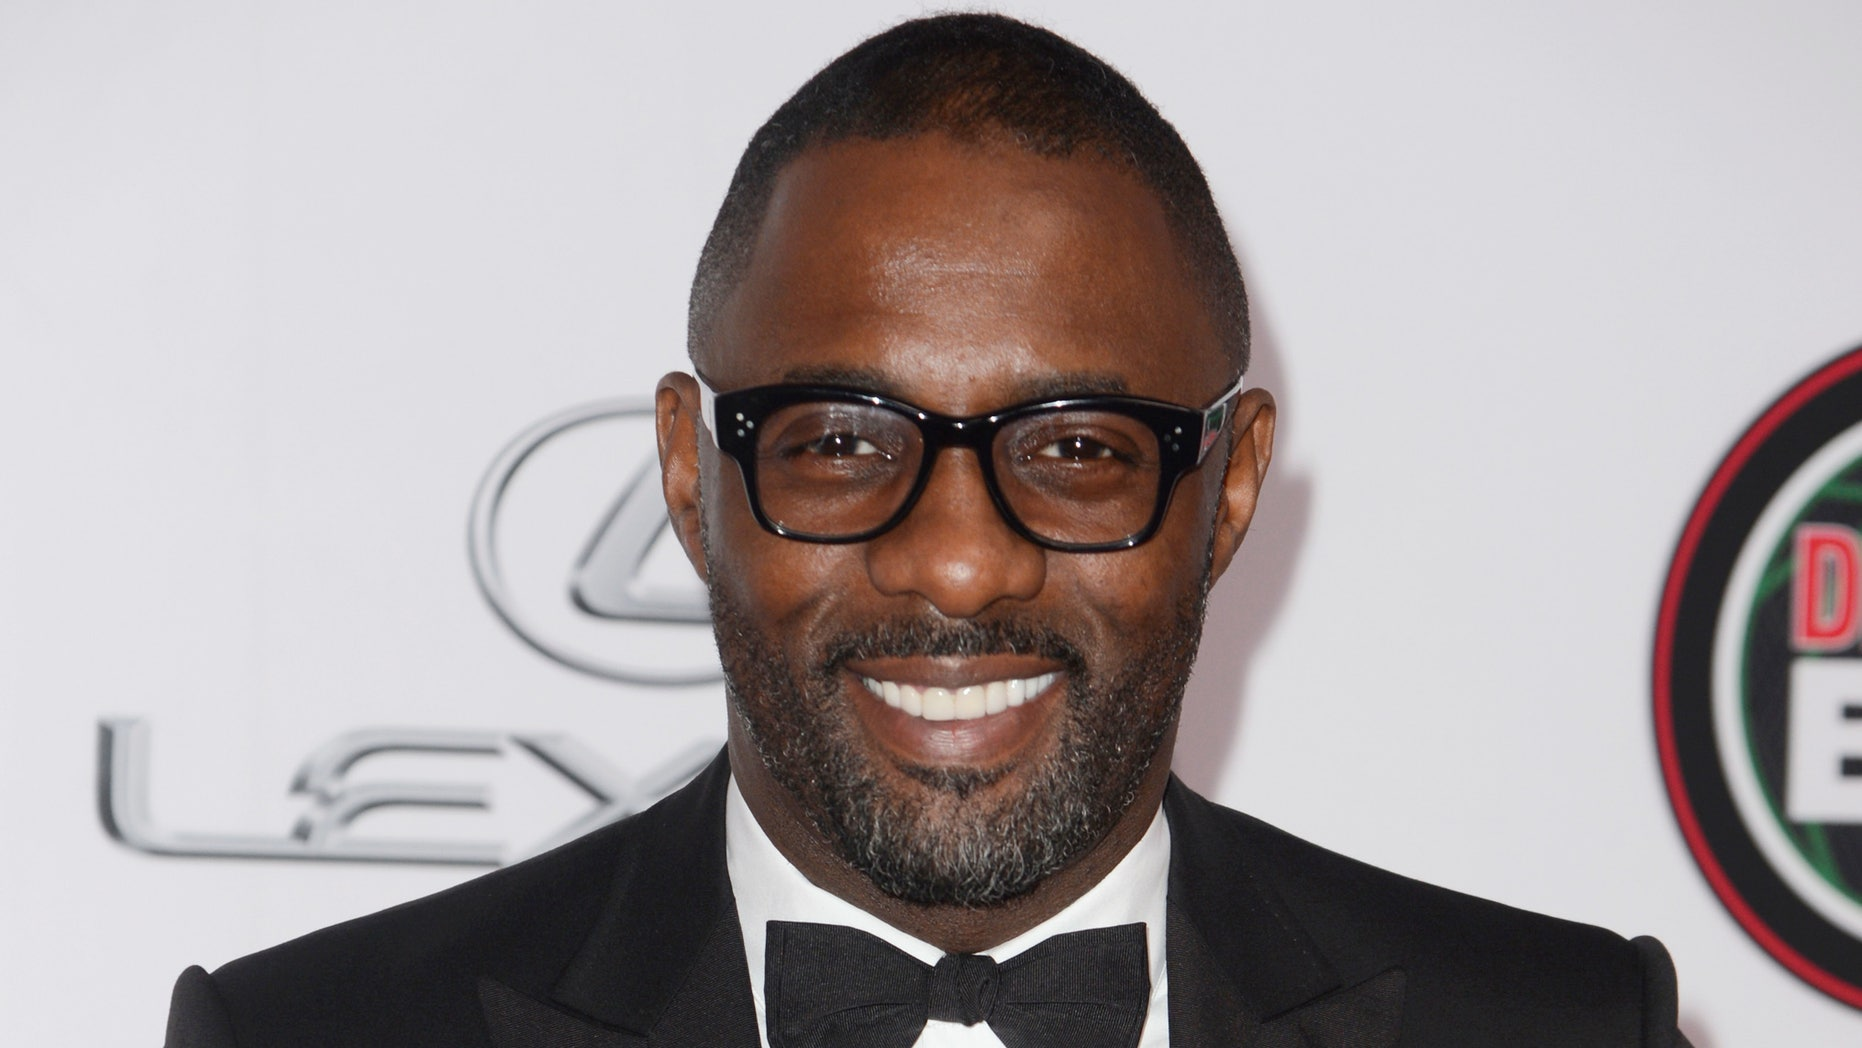 Feb 22, 2014. Idris Elba attends the 45th NAACP Image Awards in Pasadena, California.